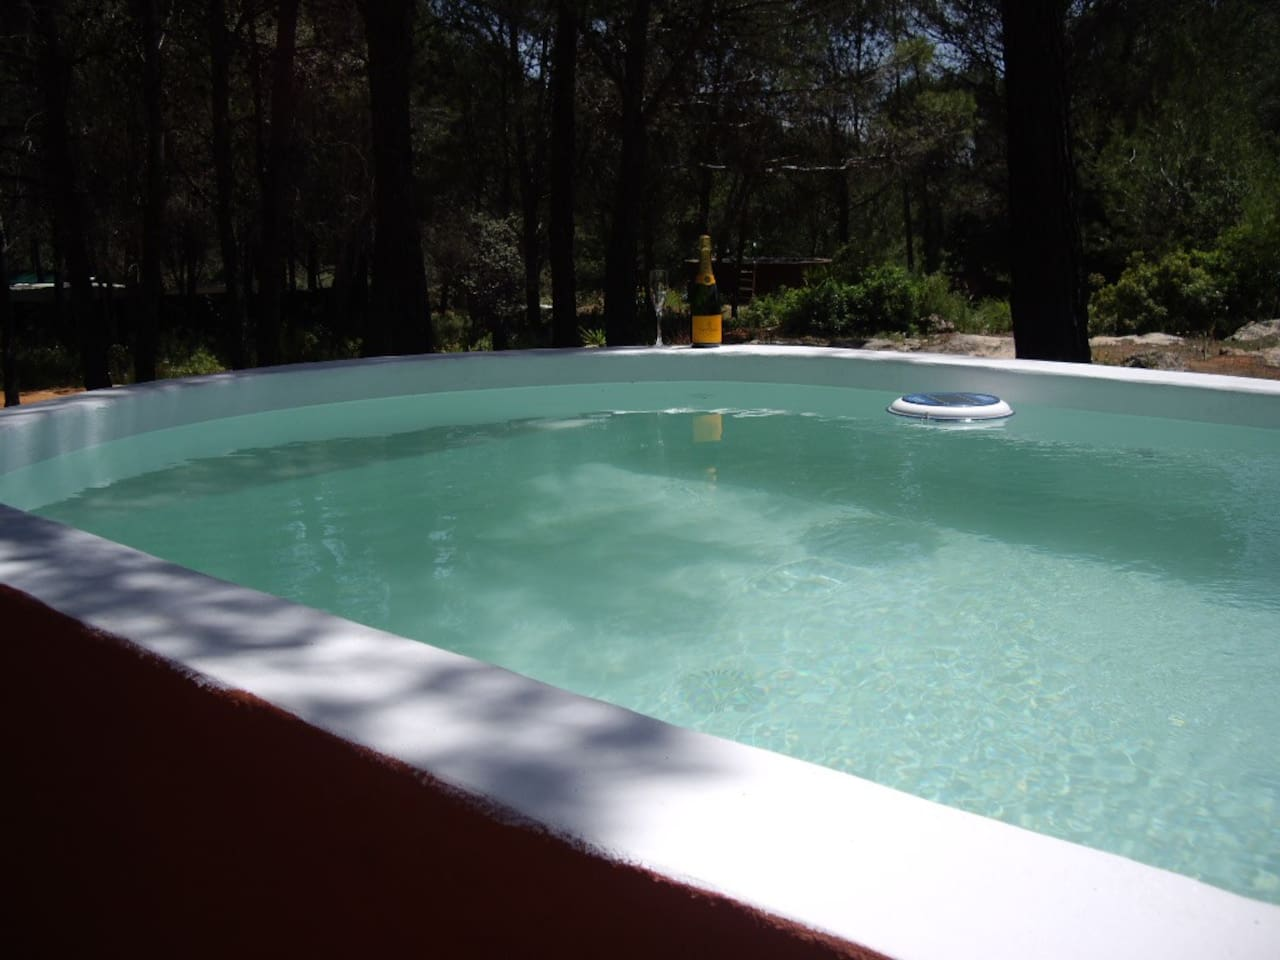 Its small but did you come here to swim or simply enjoy?